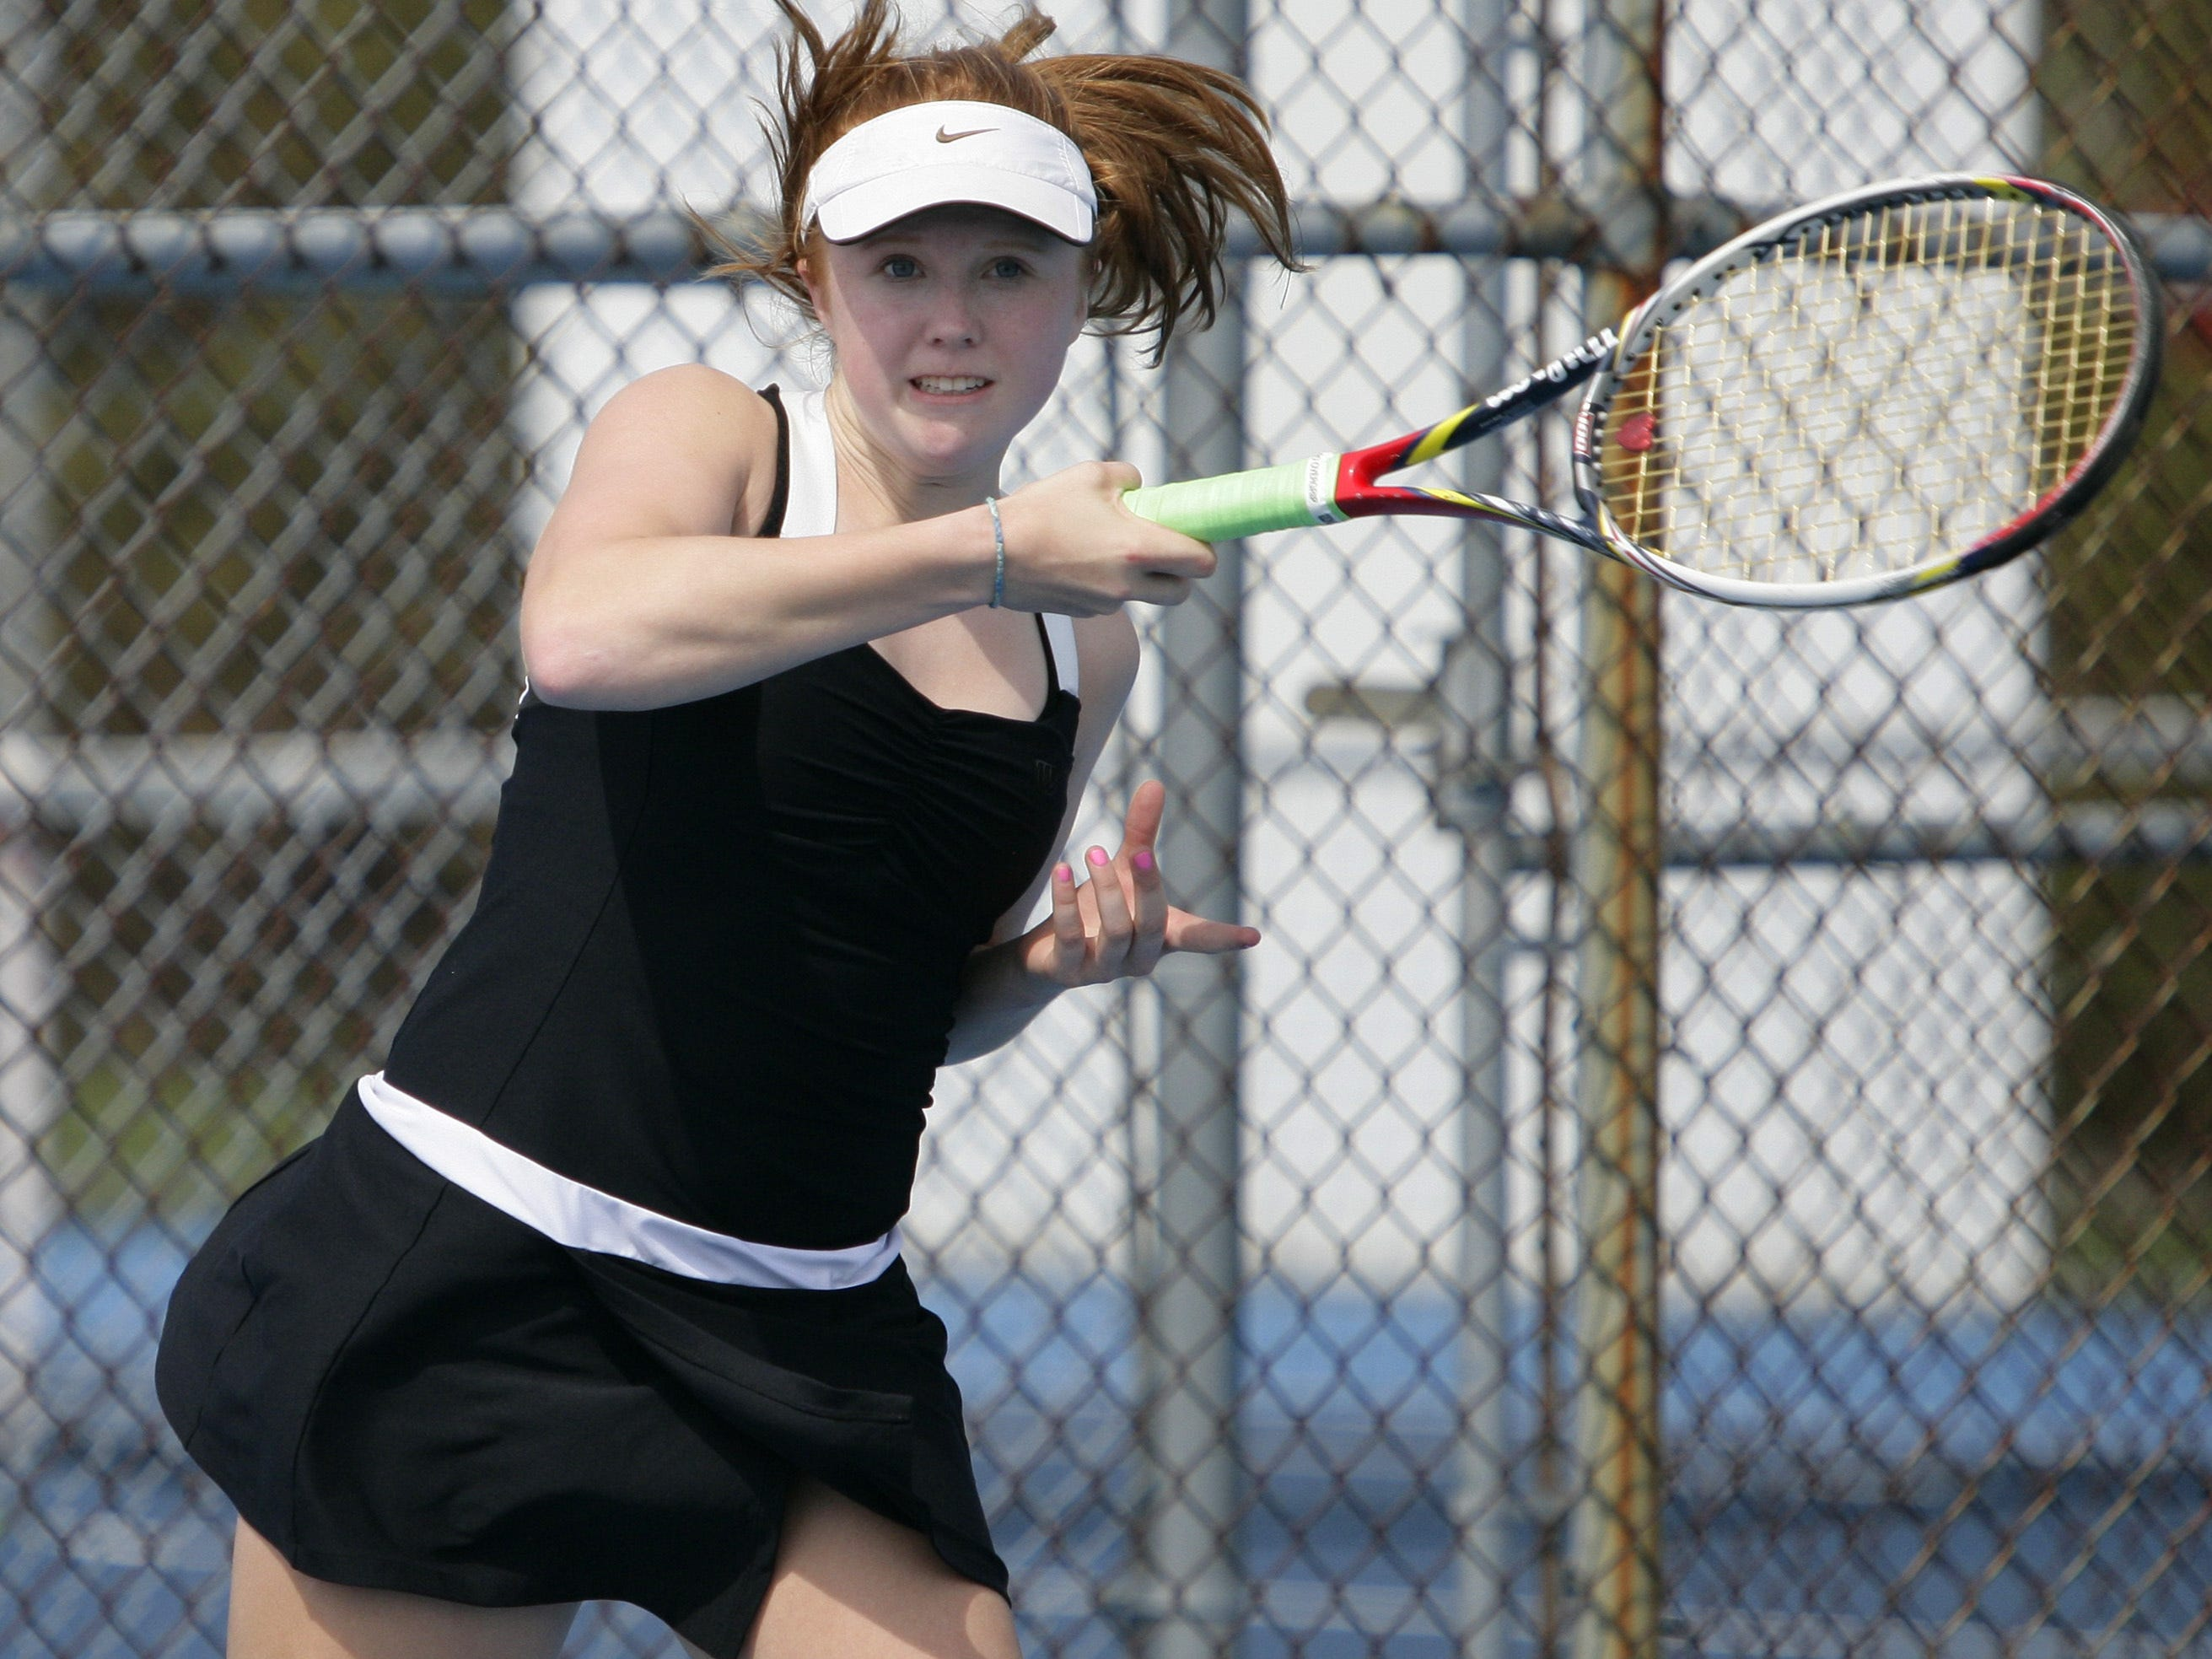 Williamston's Sara Daavettila is in the midst of pursuing her second straight Division 3 No. 1 singles championship.